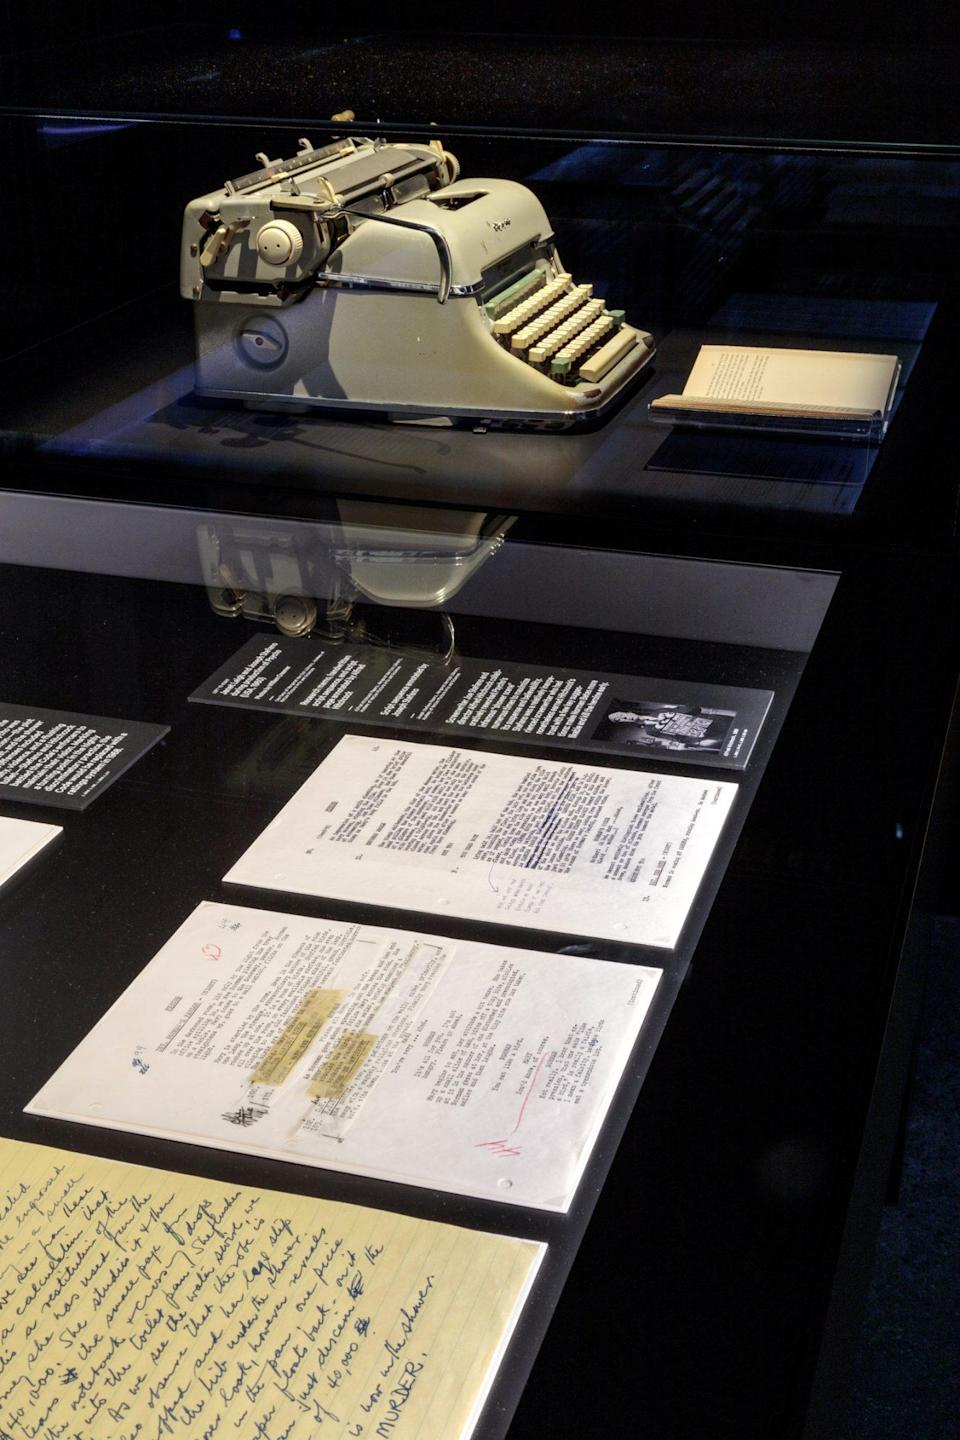 <p>The typewriter Joseph Stefano used to write <em>Psycho</em> is featured prominently, alongside pages of the script.</p>